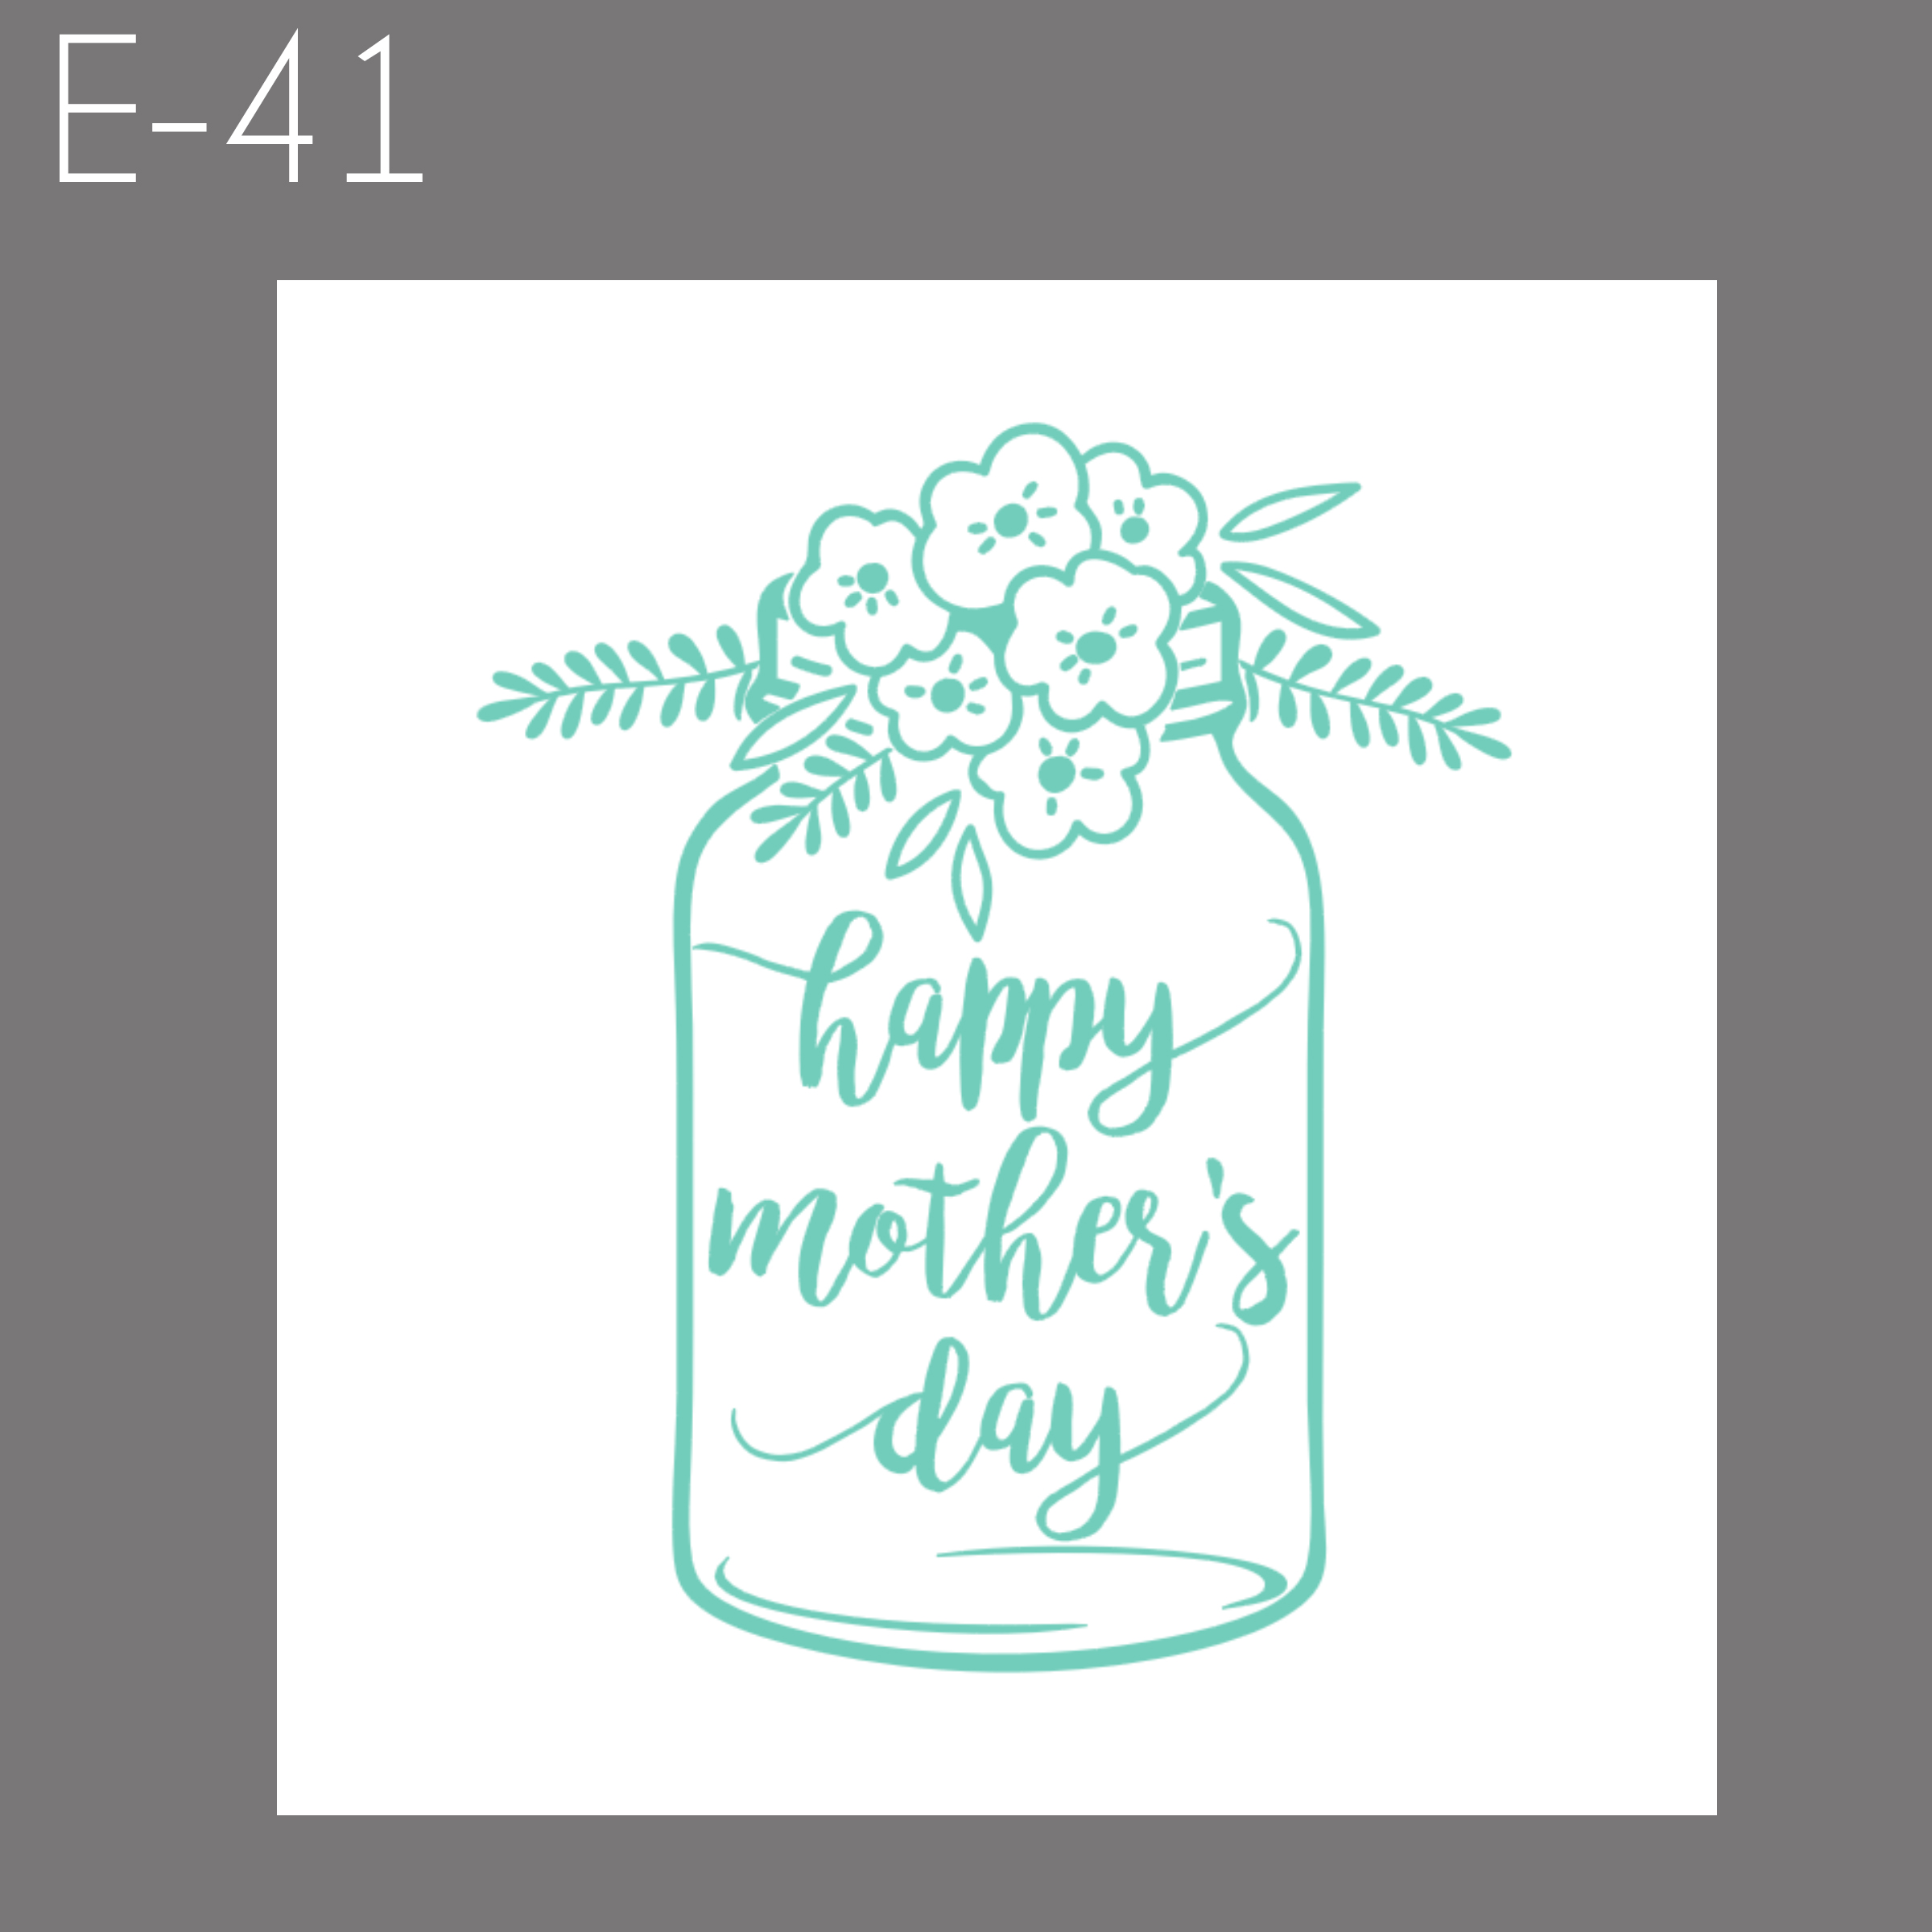 E41 - Happy Mother's Day.jpg